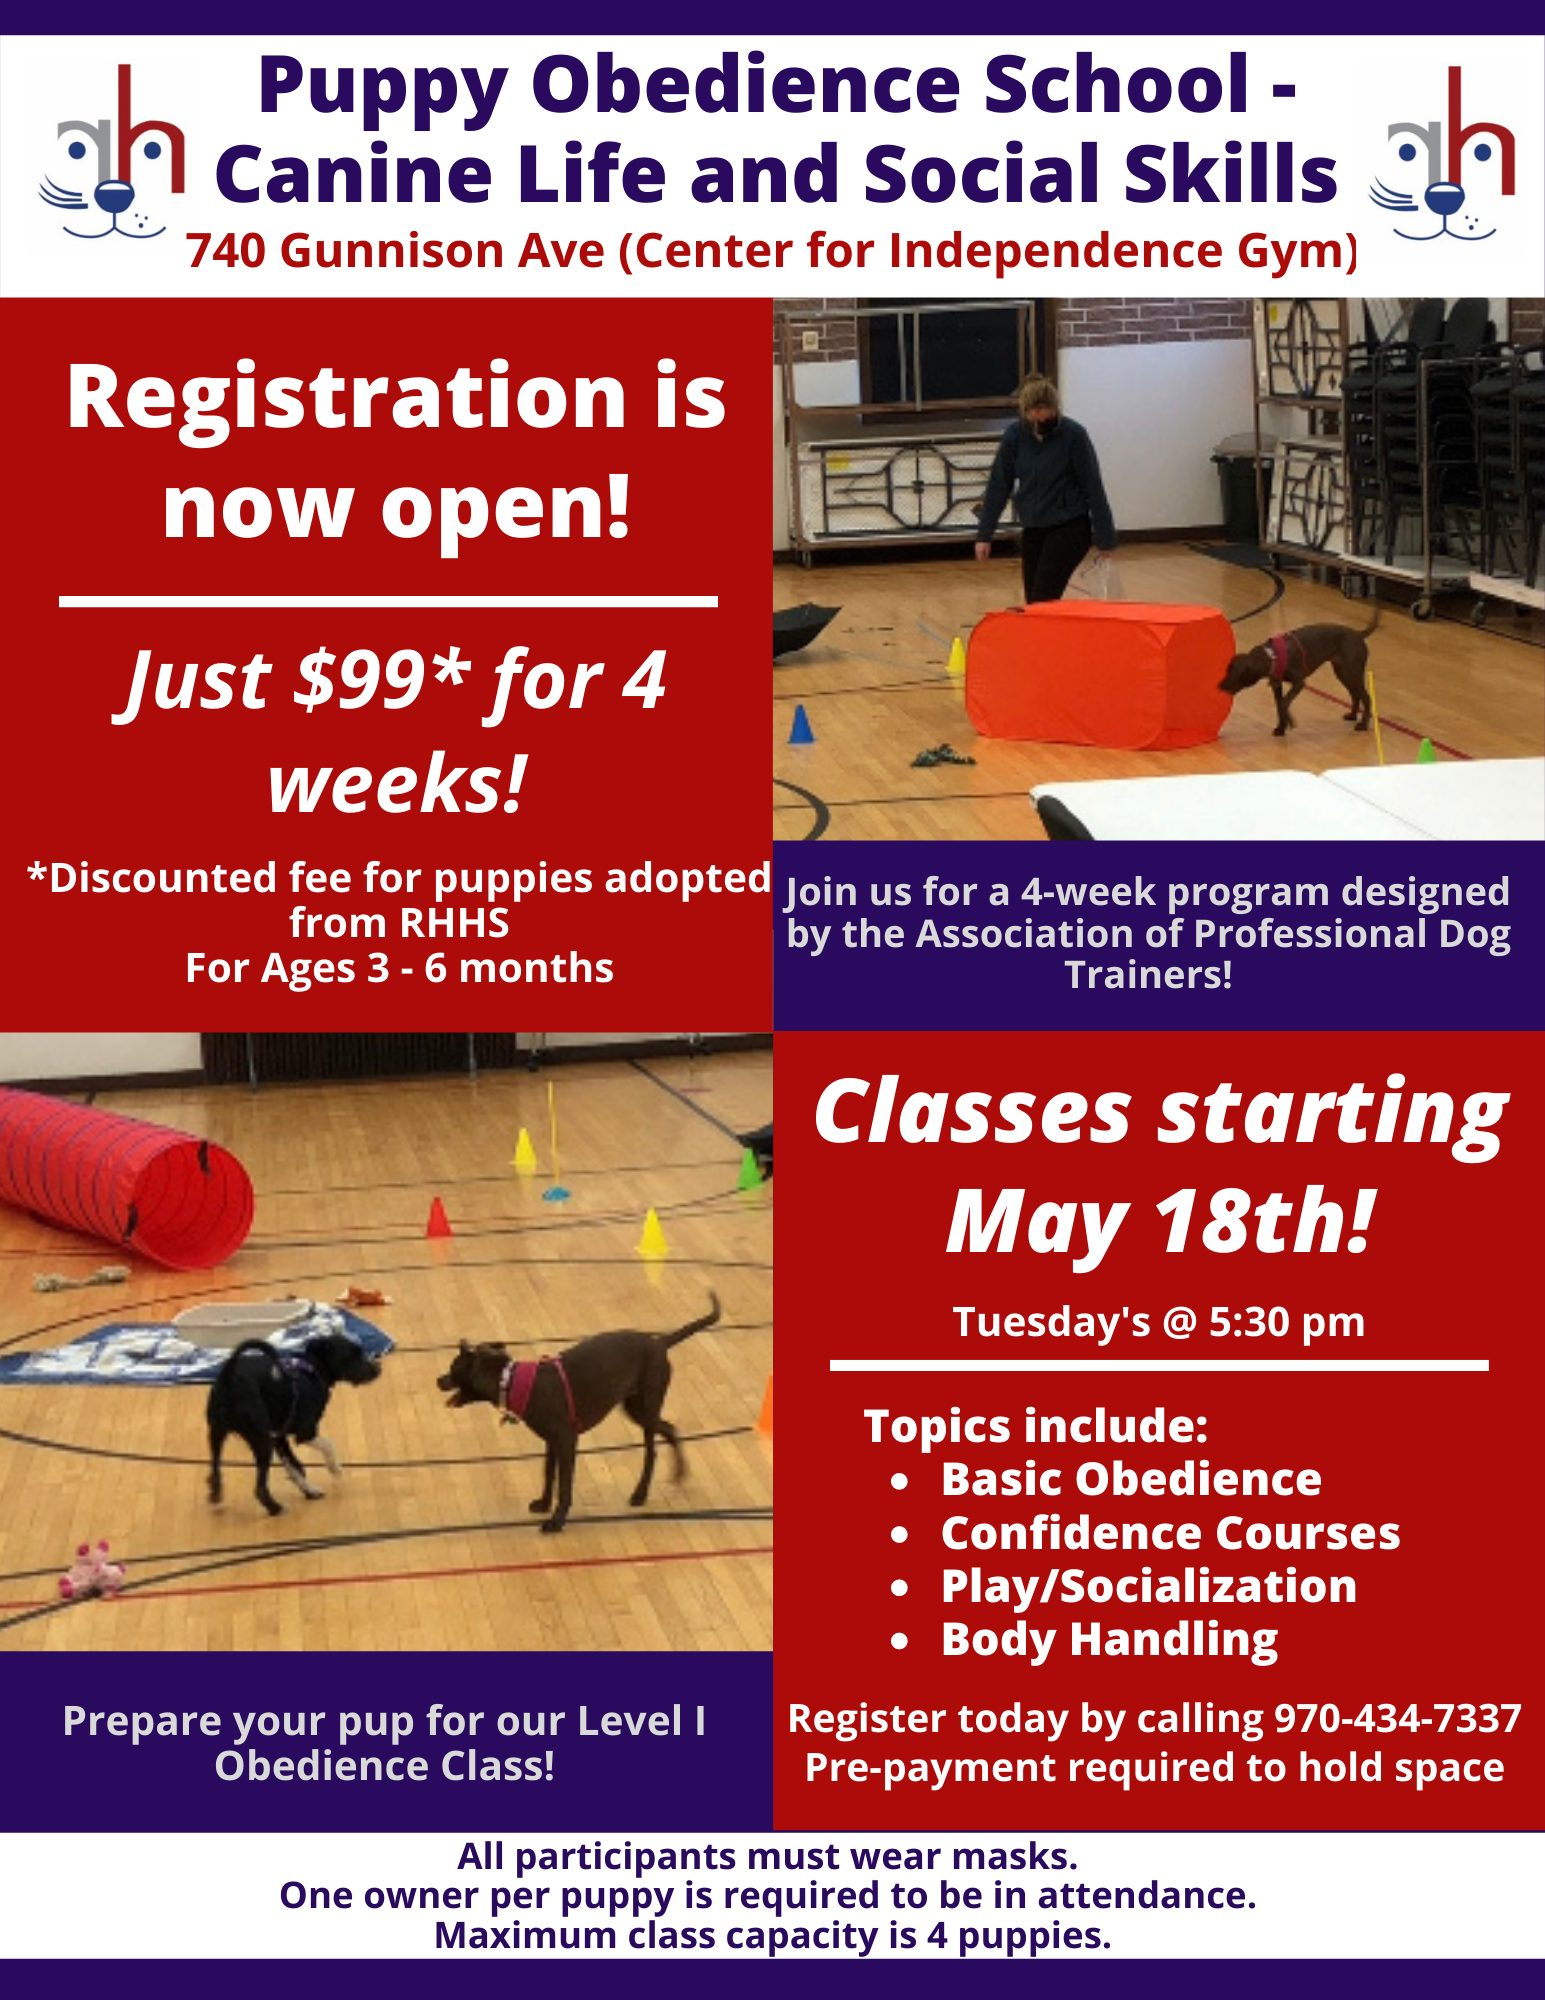 Puppy Obedience School – Canine Life and Social Skills